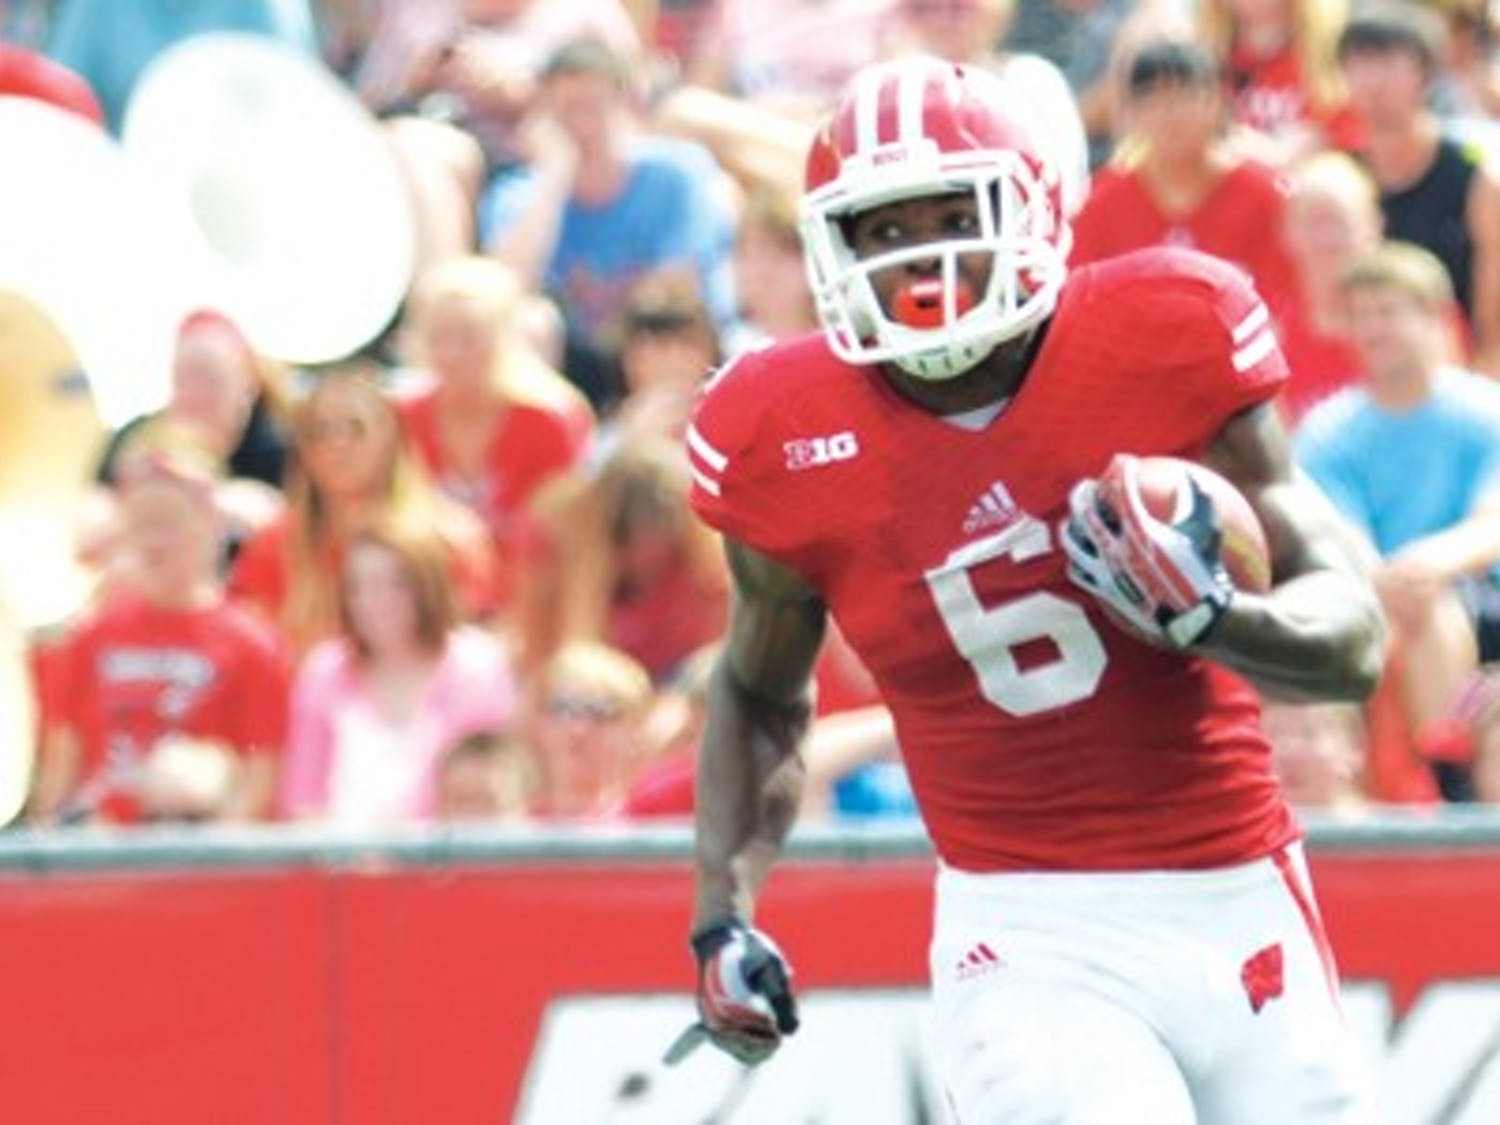 True freshman running back Corey Clement rushed for a team-best 151 yards and two touchdowns Saturday, including a 75-yard run for a score in the fourth quarter.